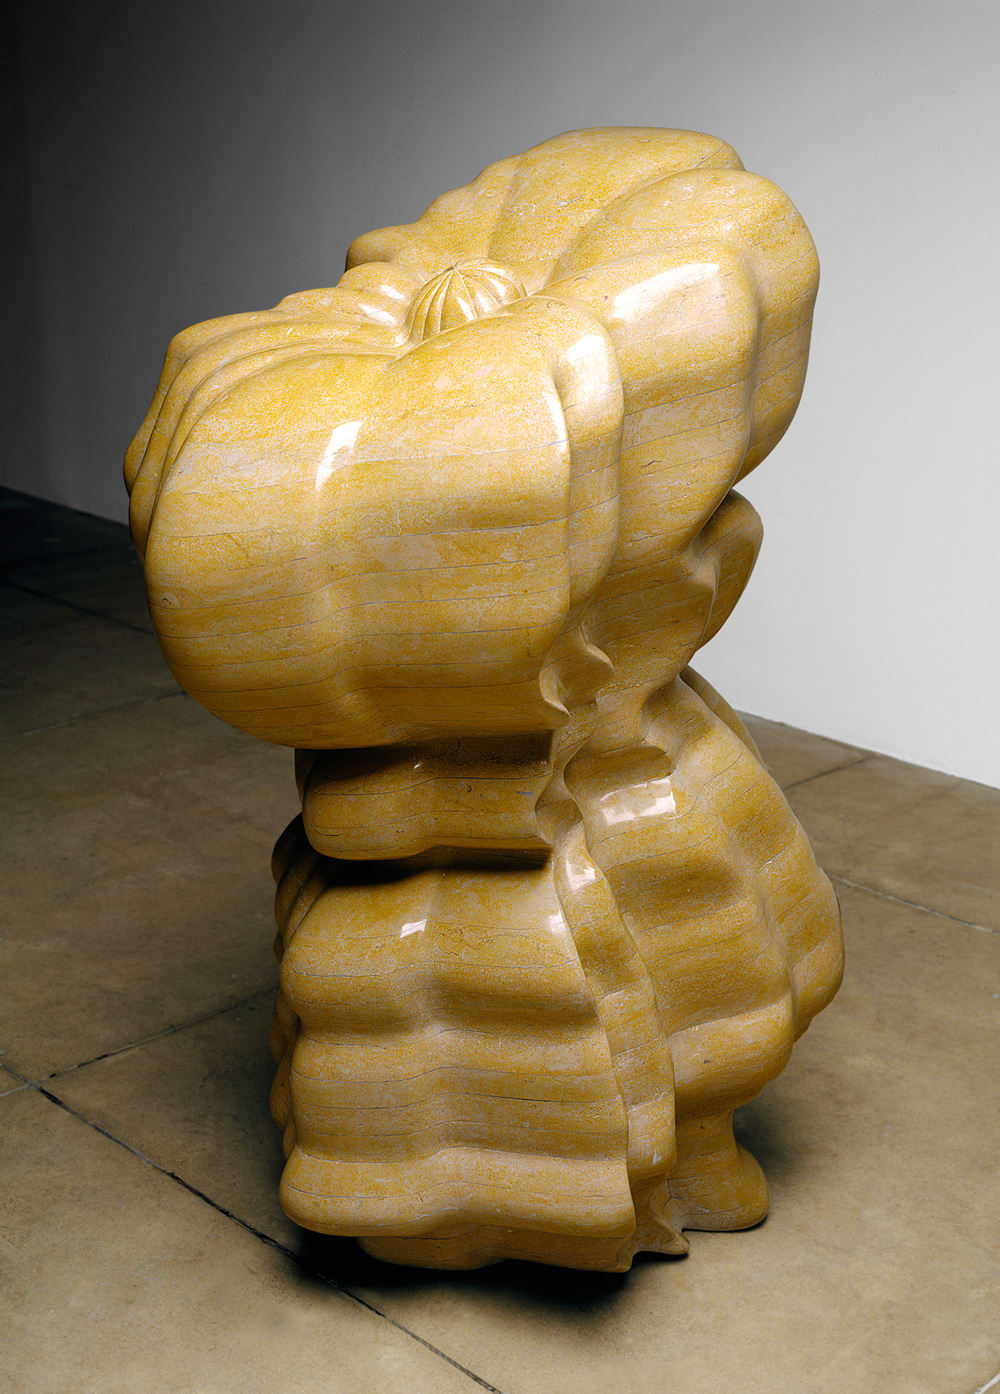 Tony Cragg, Eine Wucht In Tüten (A power in a bag), 2000